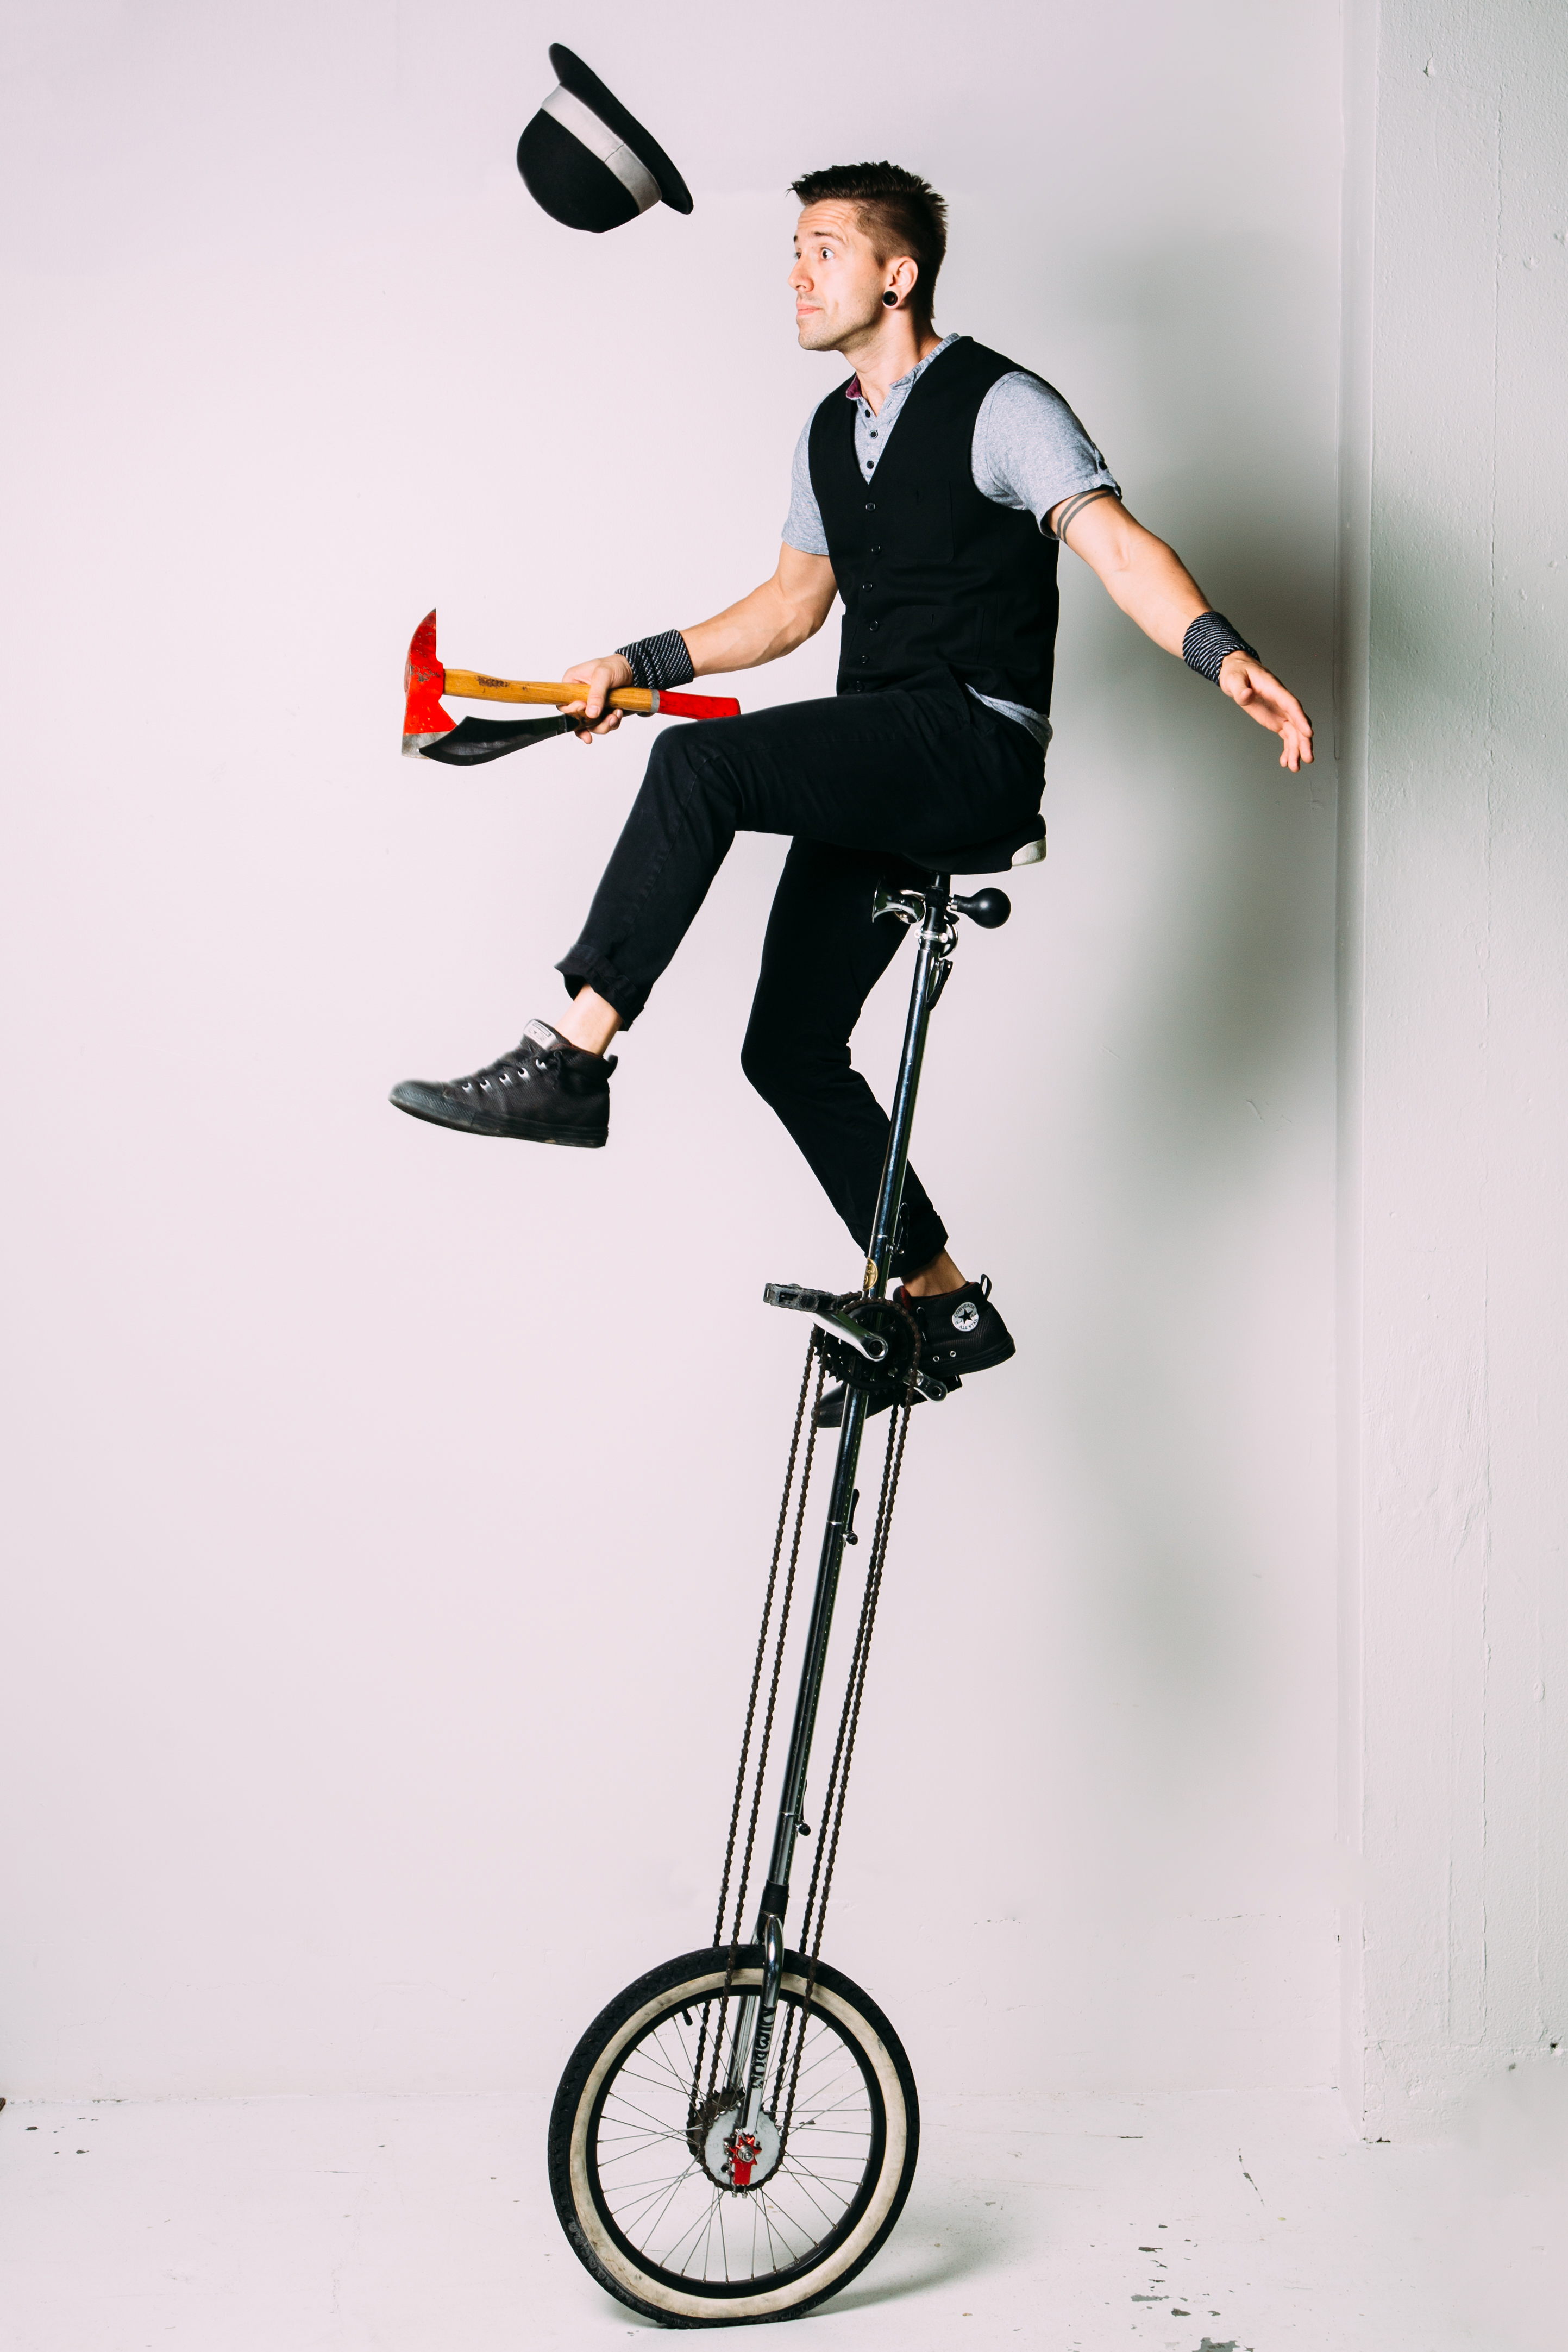 Unicycle Stunts by Jason D'Vaude